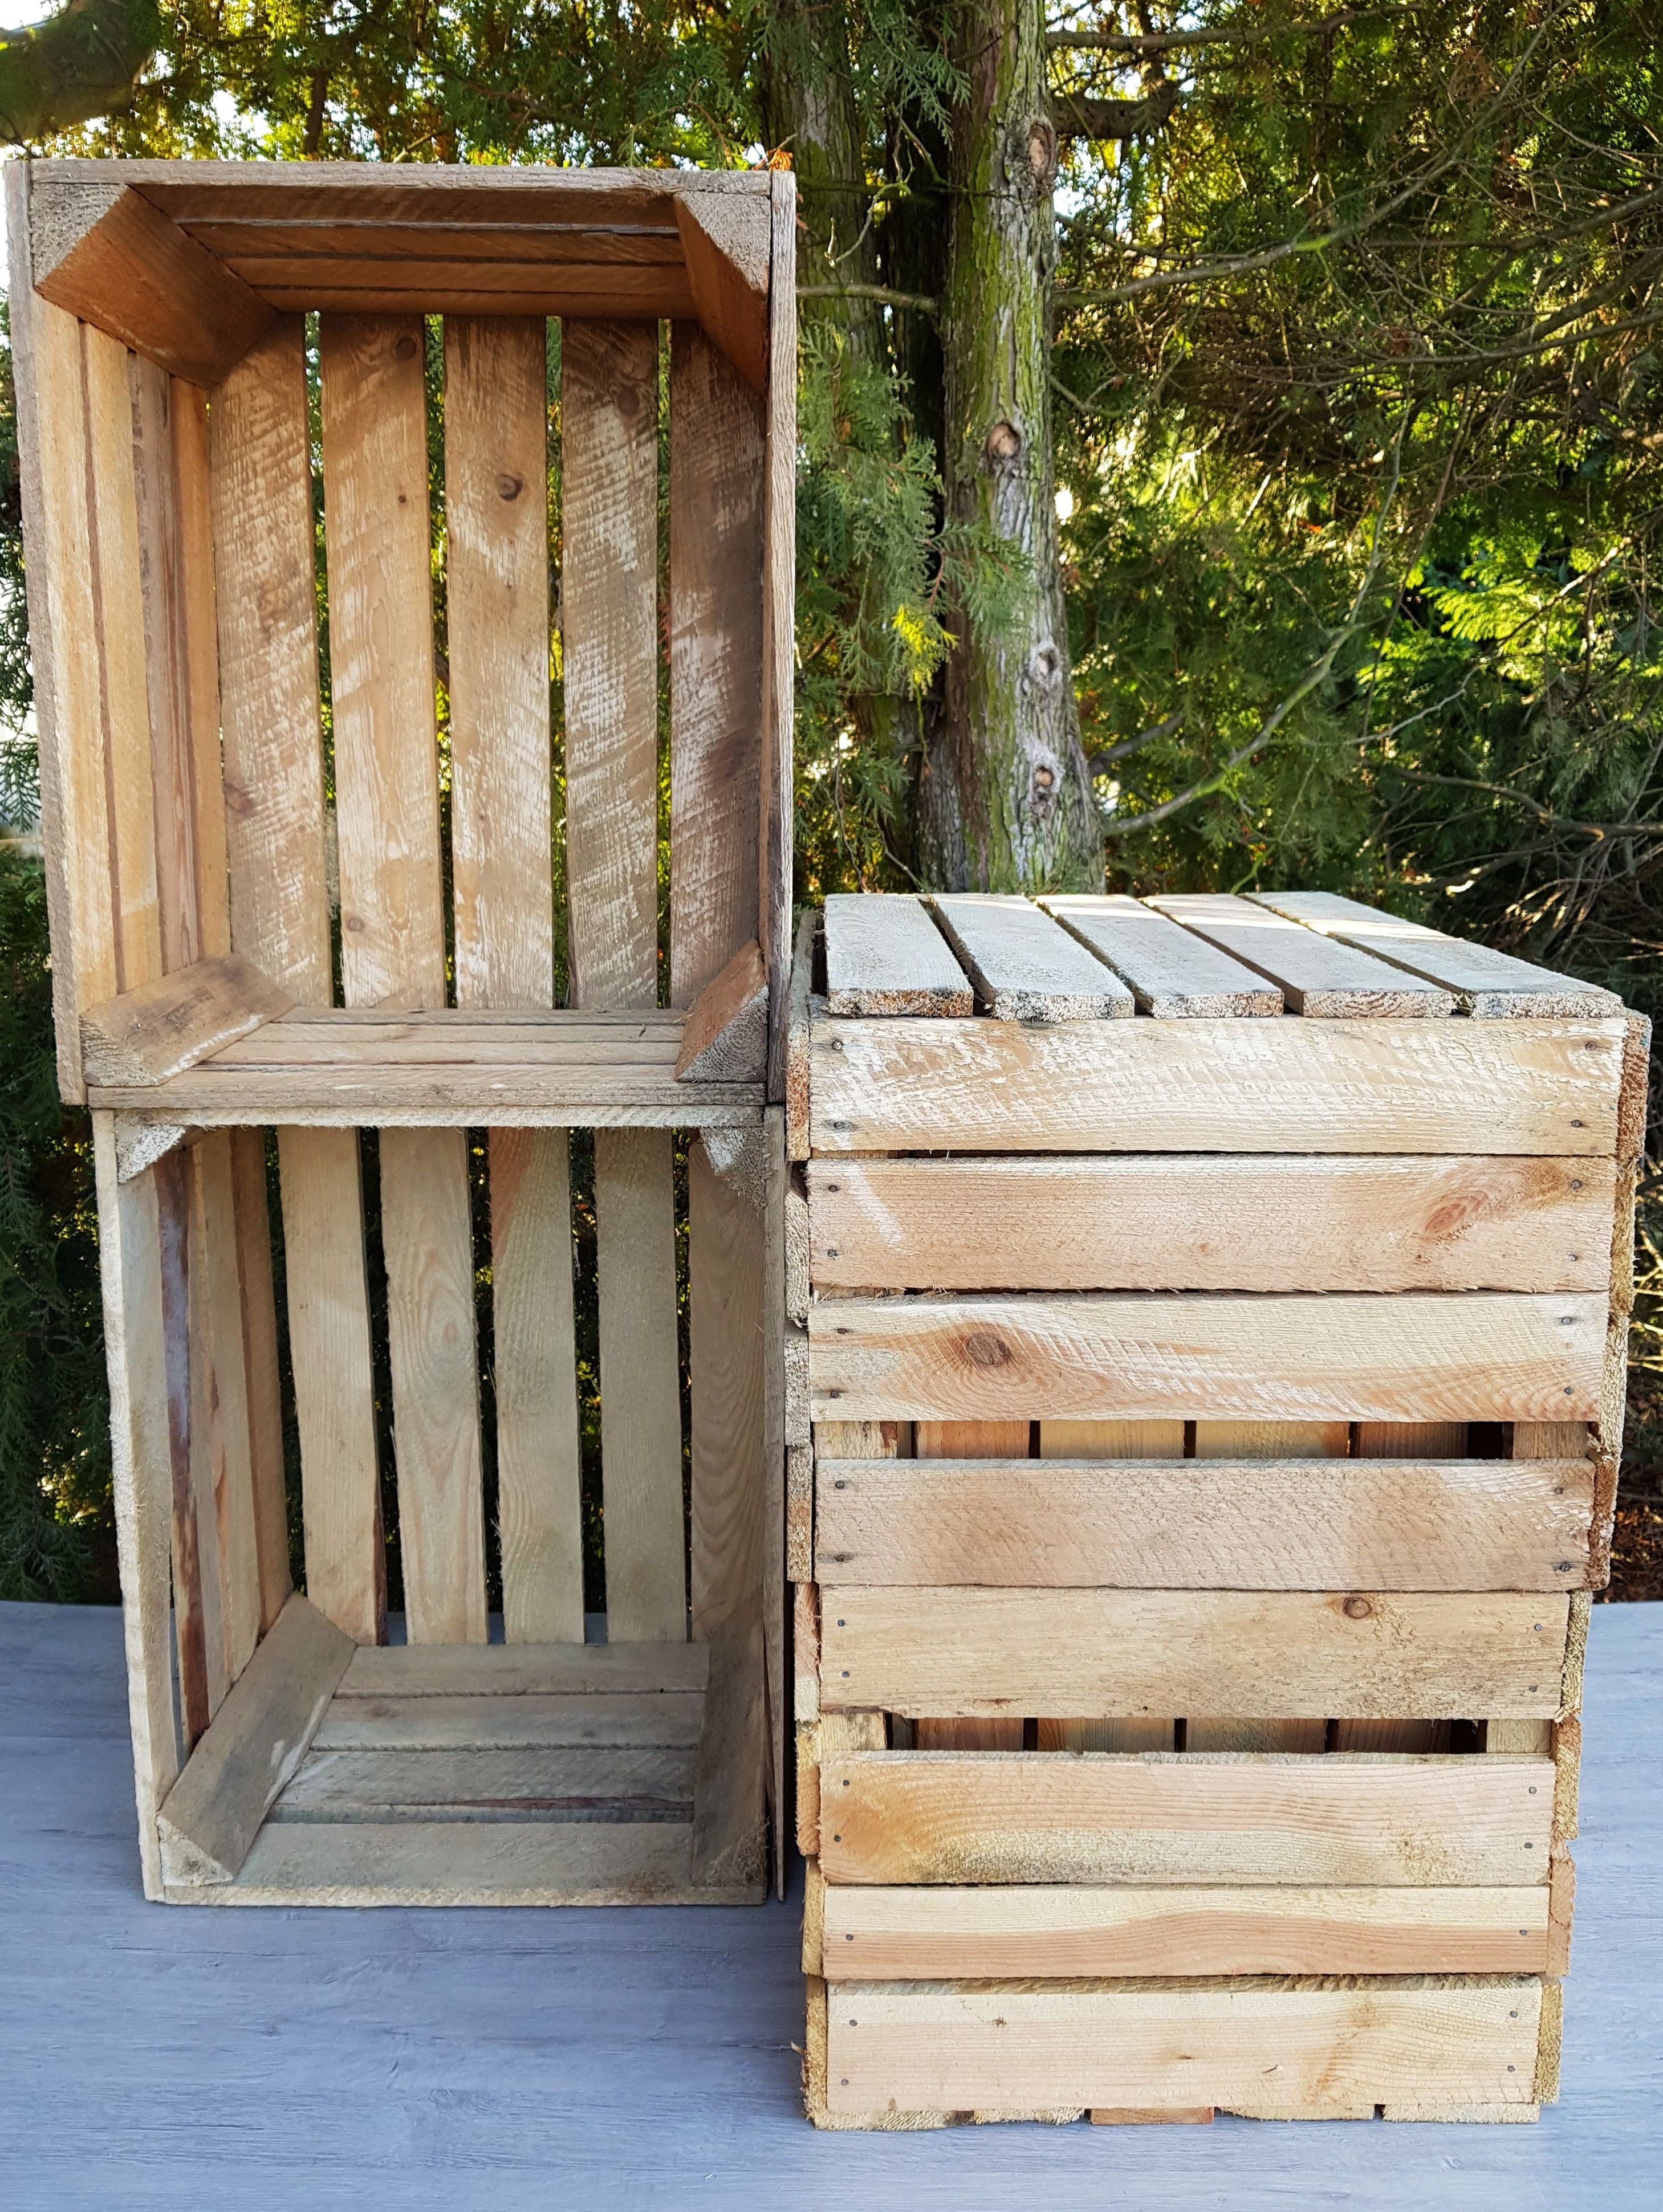 The Best Price For Crates From Setcrates Check Our Etsy Shop In